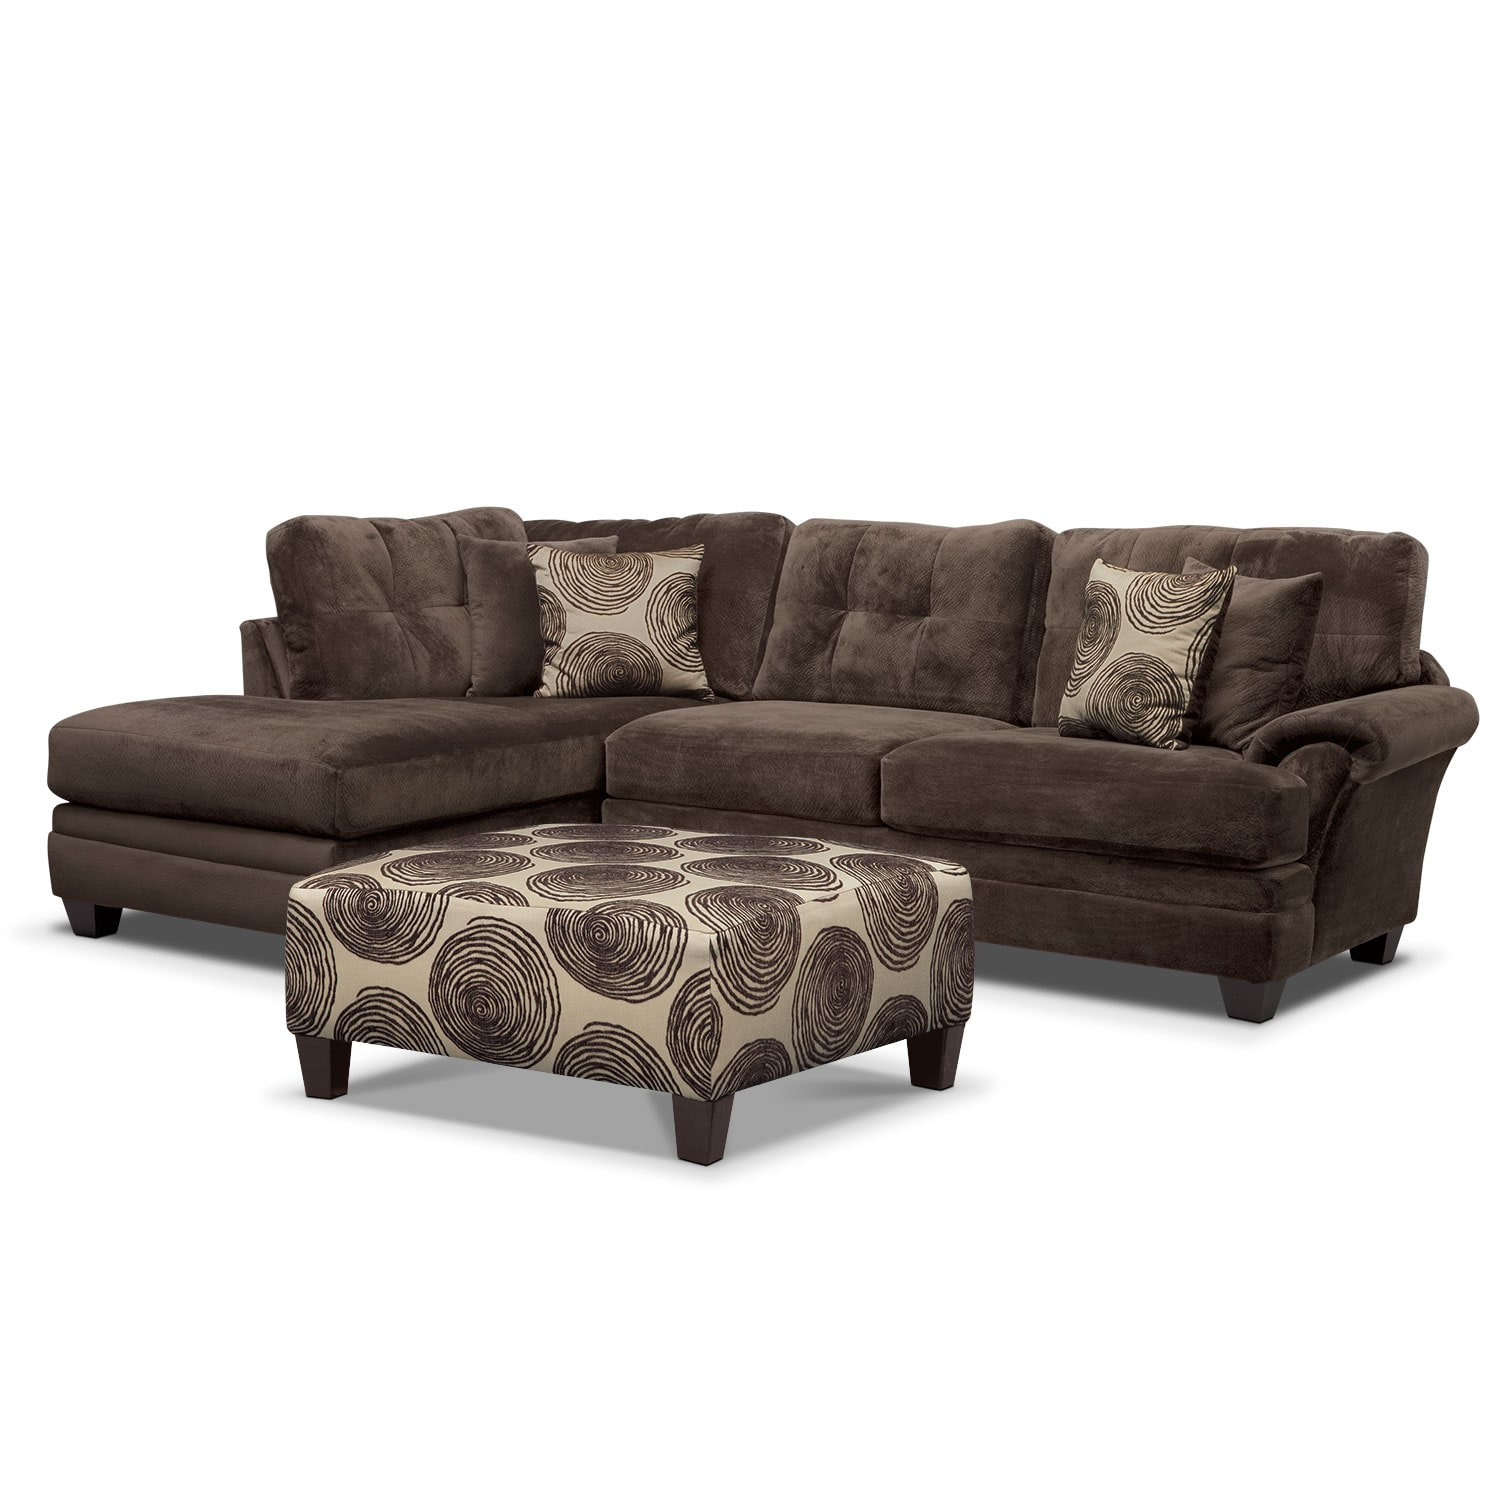 Cordelle 2 Piece Sectional With Chaise And Ottoman